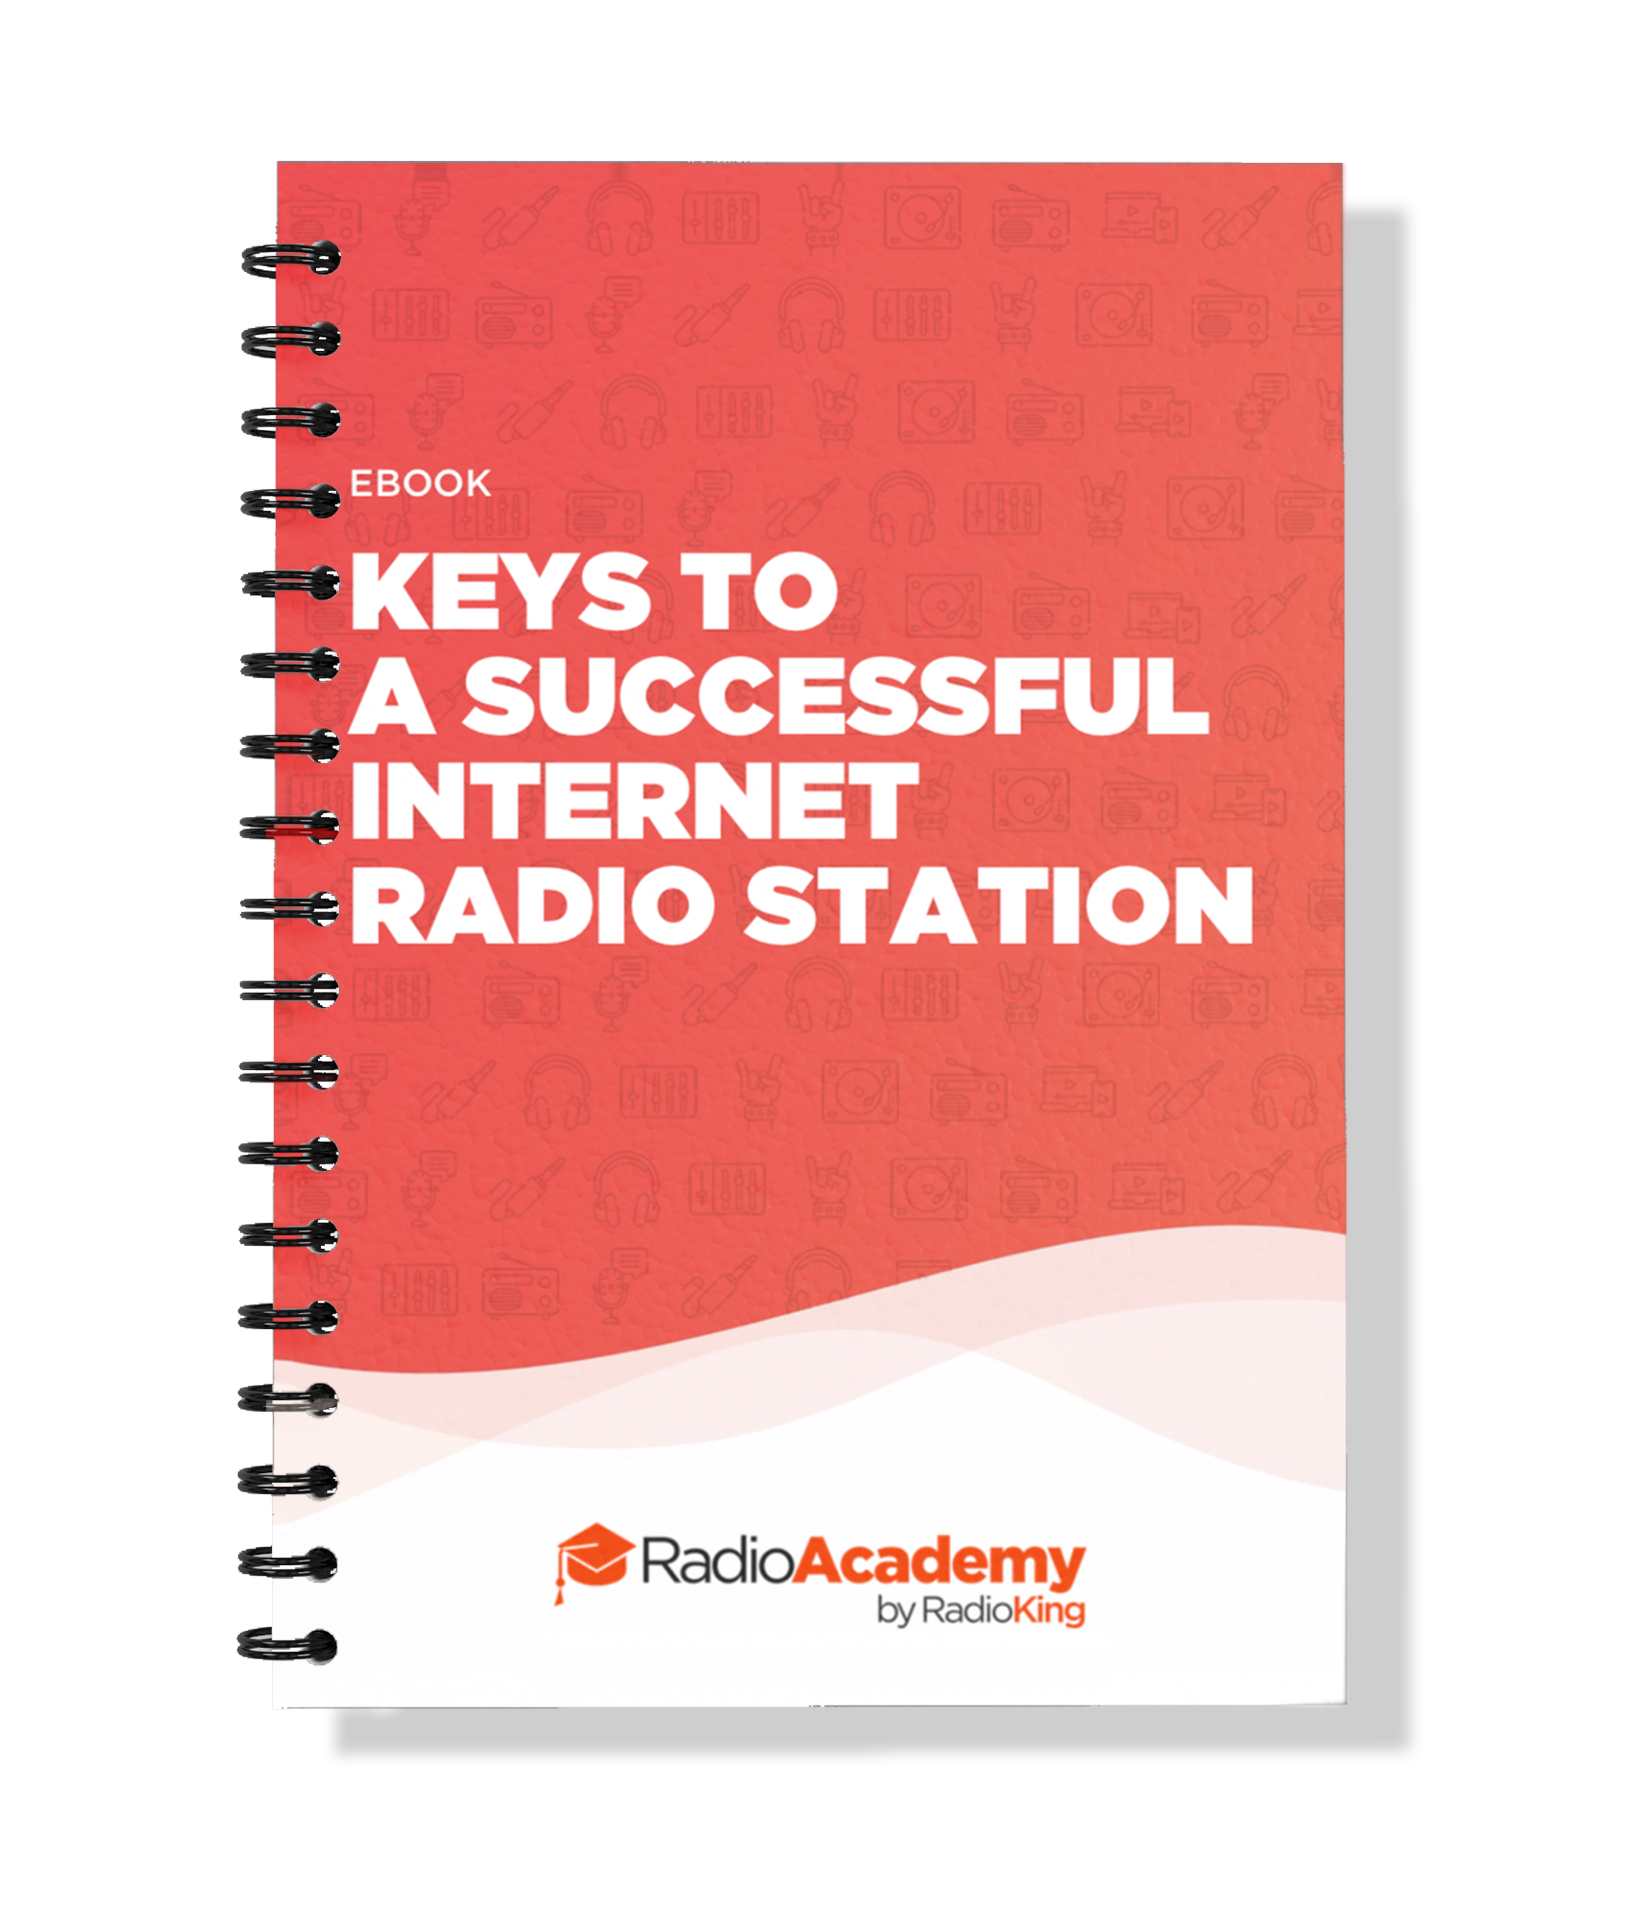 RadioAcademy: courses to help you create an Internet radio